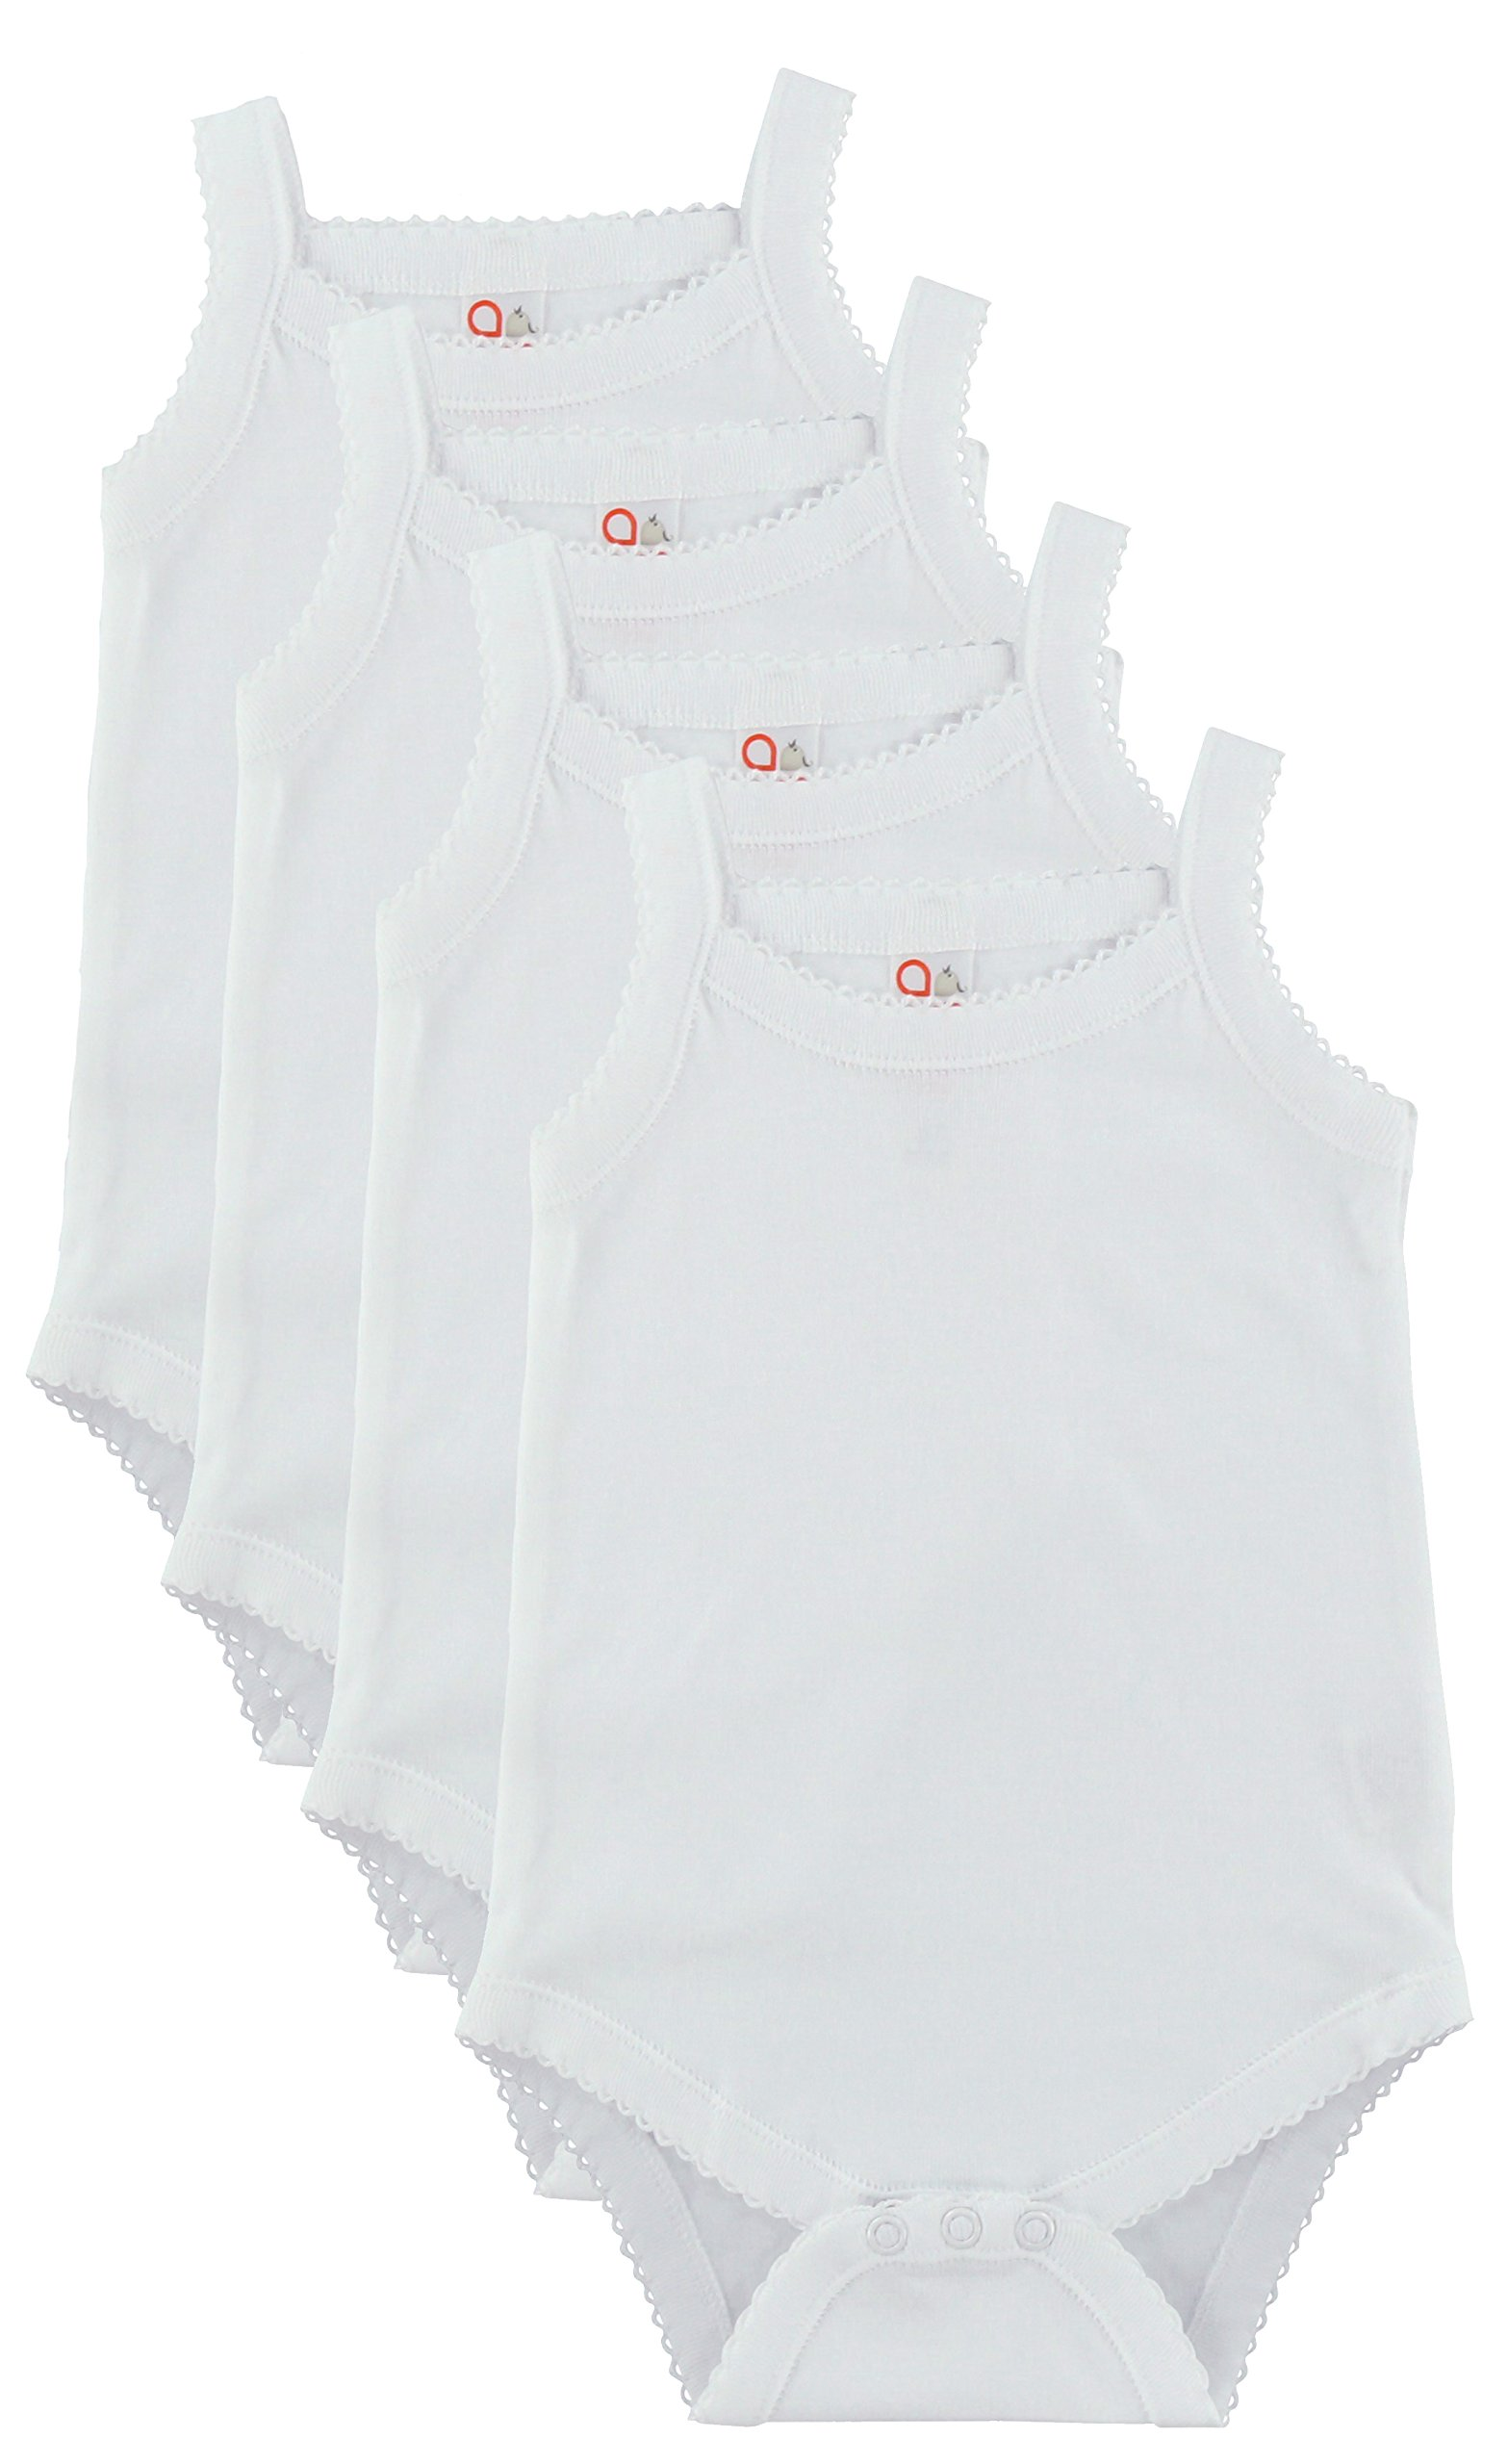 Baby and Toddler Girls White Camisole Onesie Bodysuit - W2GSNR - Size 18-24 - 4PK by Baby Jay